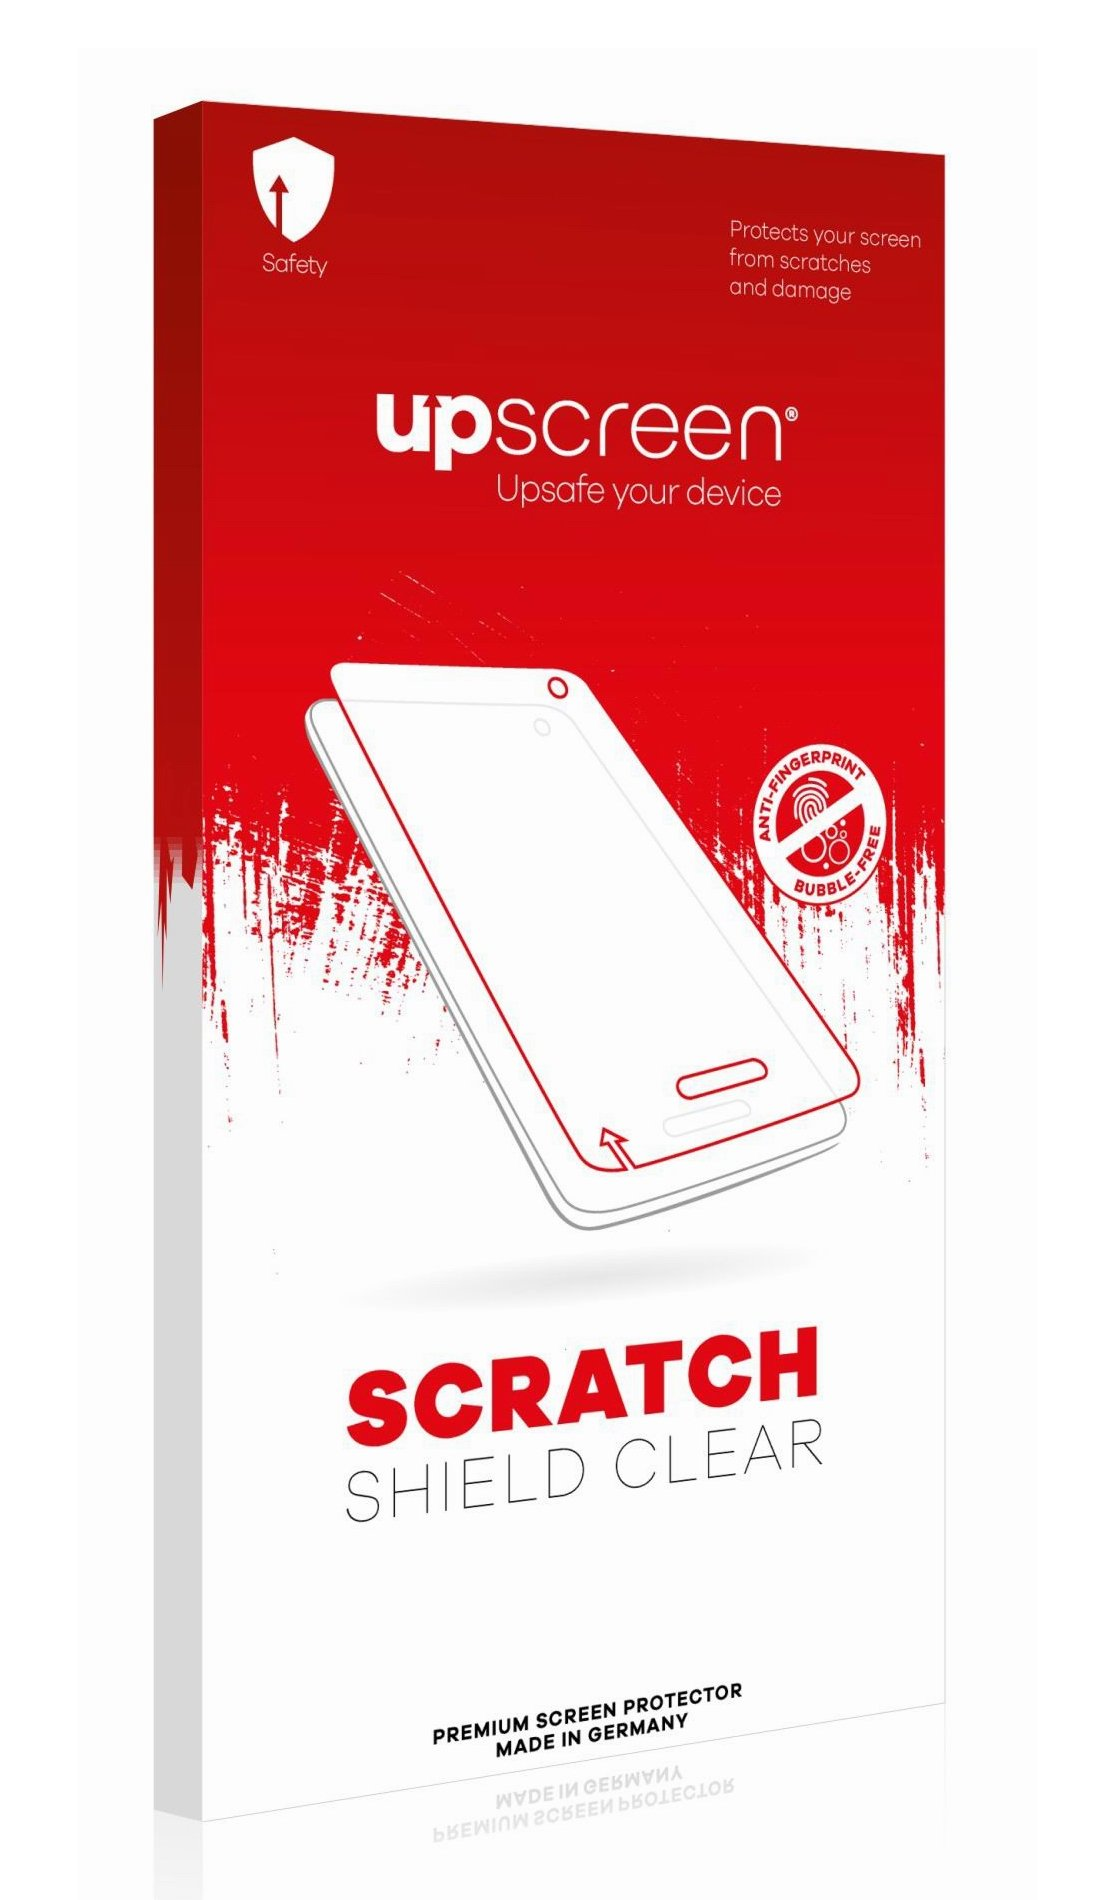 upscreen Scratch Shield Clear Screen Protector for Garmin dezl 780 LMT-D, Strong Scratch Protection, High Transparency, Multitouch Optimized by upscreen